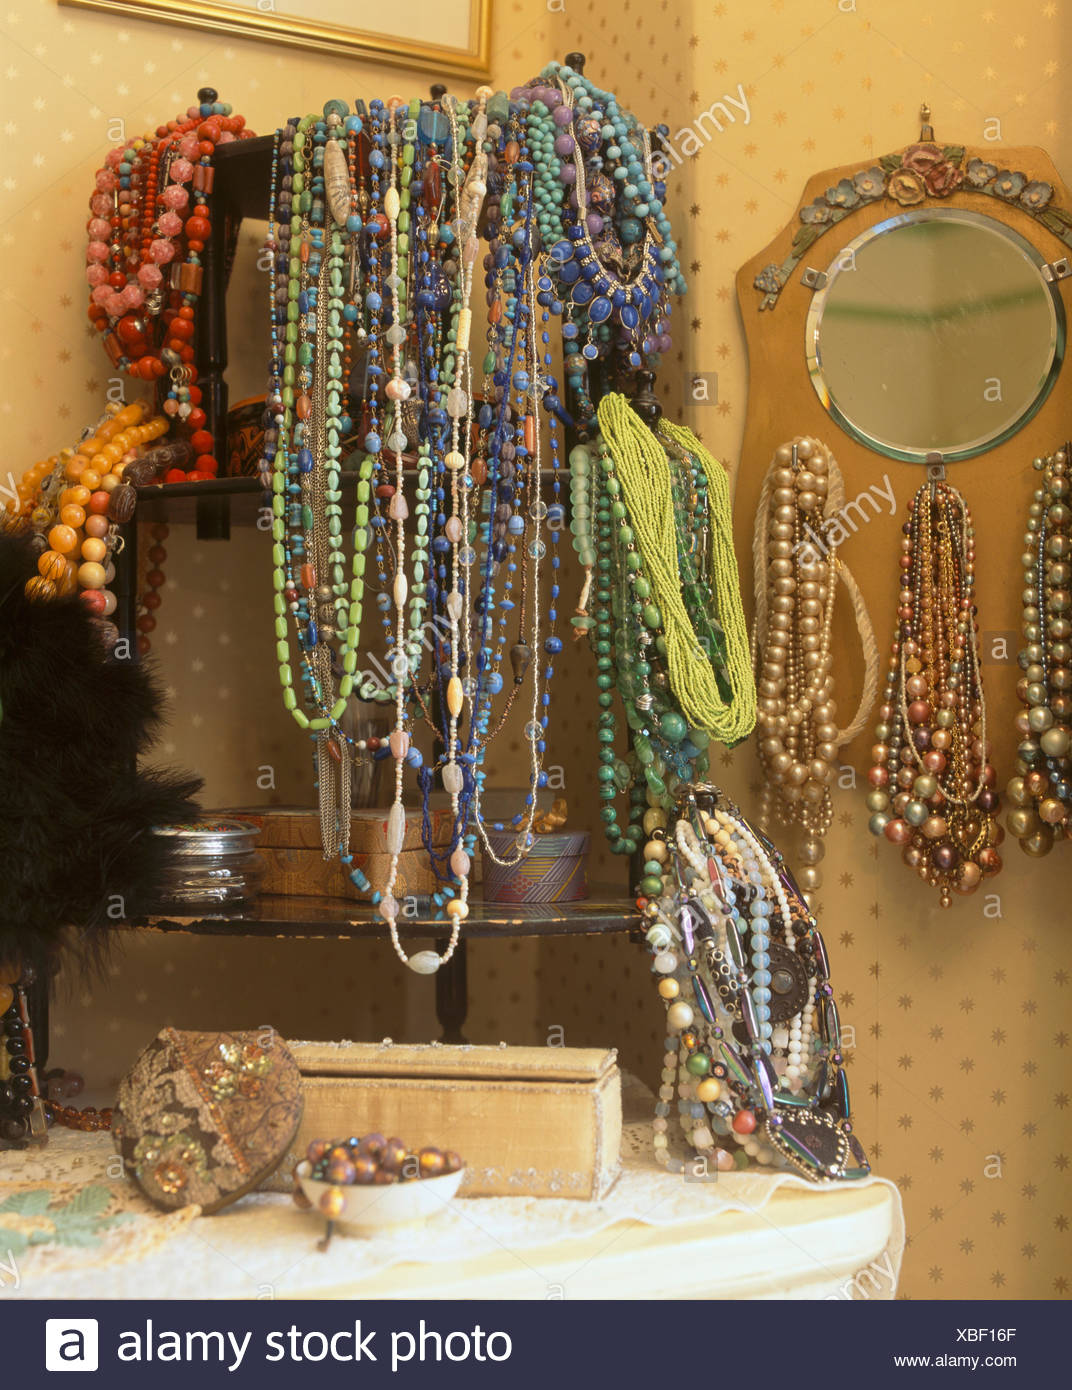 Close-up of collection of twenties and thirties glass bead necklaces - Stock Image